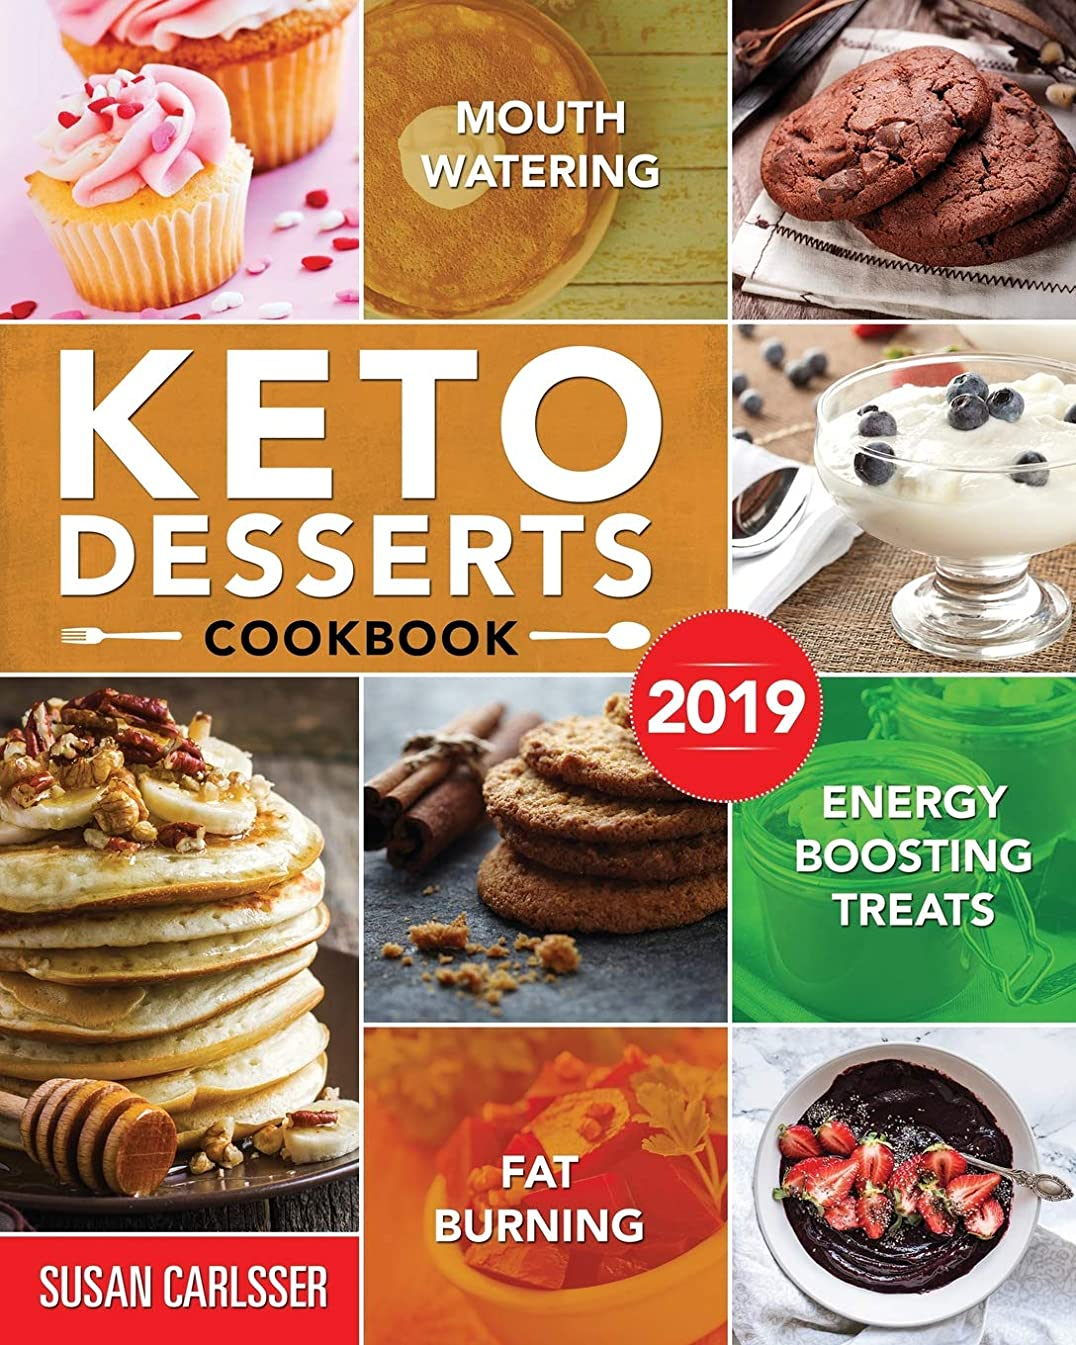 のために幻滅する拘束するKeto Desserts Cookbook #2019: Mouth-Watering, Fat Burning and Energy Boosting Treats